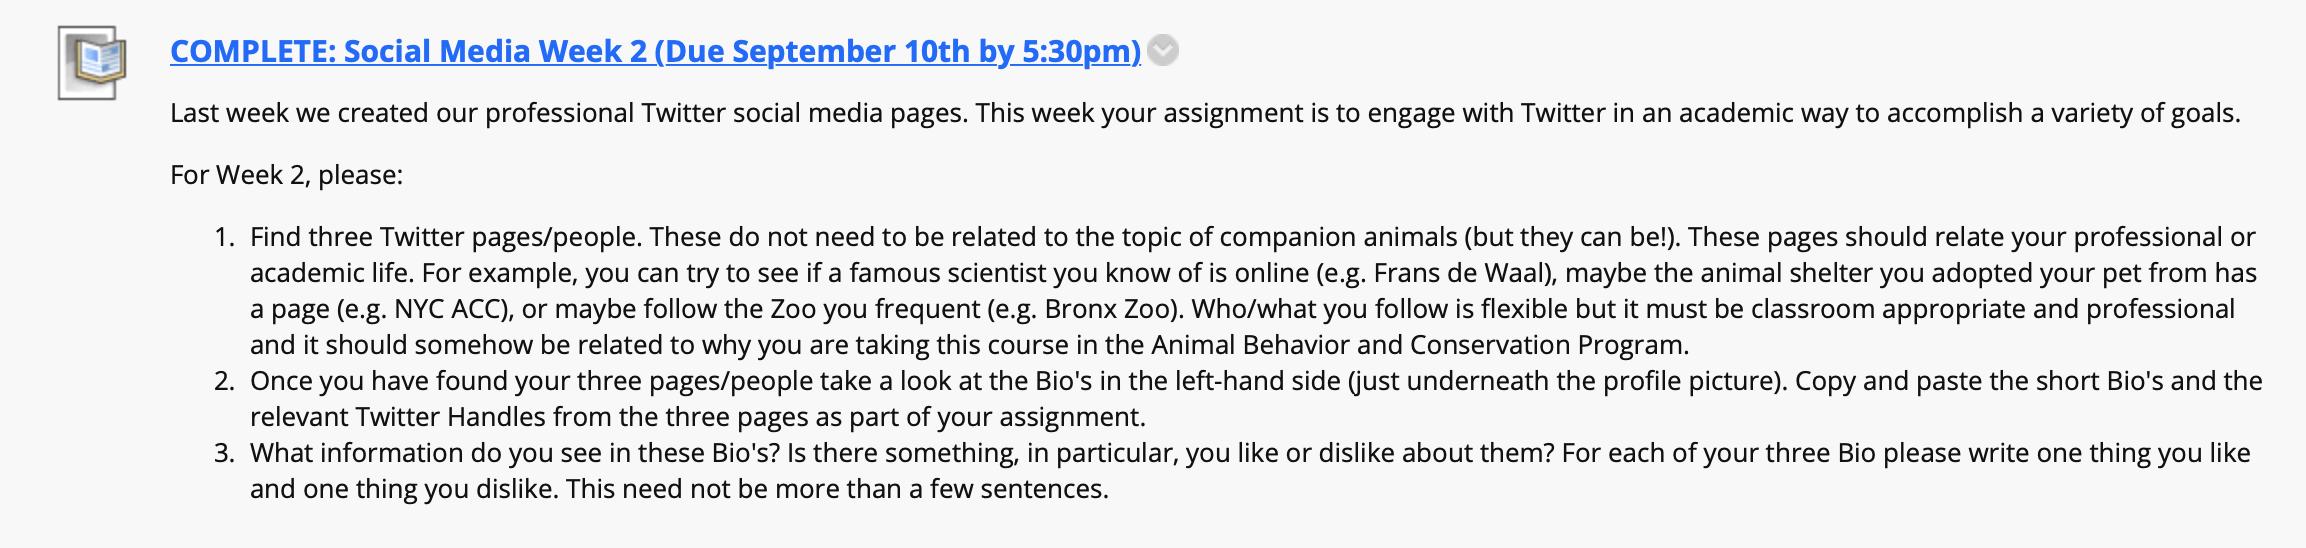 An extended screenshot from a course website that reads: Last week we created our professional Twitter social media pages. This week your assignment is to engage with Twitter in an academic way to accomplish a variety of goals.  For Week 2, please:  Find three Twitter pages/people. These do not need to be related to the topic of companion animals (but they can be!). These pages should relate your professional or academic life. For example, you can try to see if a famous scientist you know of is online (e.g. Frans de Waal), maybe the animal shelter you adopted your pet from has a page (e.g. NYC ACC), or maybe follow the Zoo you frequent (e.g. Bronx Zoo). Who/what you follow is flexible but it must be classroom appropriate and professional and it should somehow be related to why you are taking this course in the Animal Behavior and Conservation Program. Once you have found your three pages/people take a look at the Bio's in the left-hand side (just underneath the profile picture). Copy and paste the short Bio's and the relevant Twitter Handles from the three pages as part of your assignment.